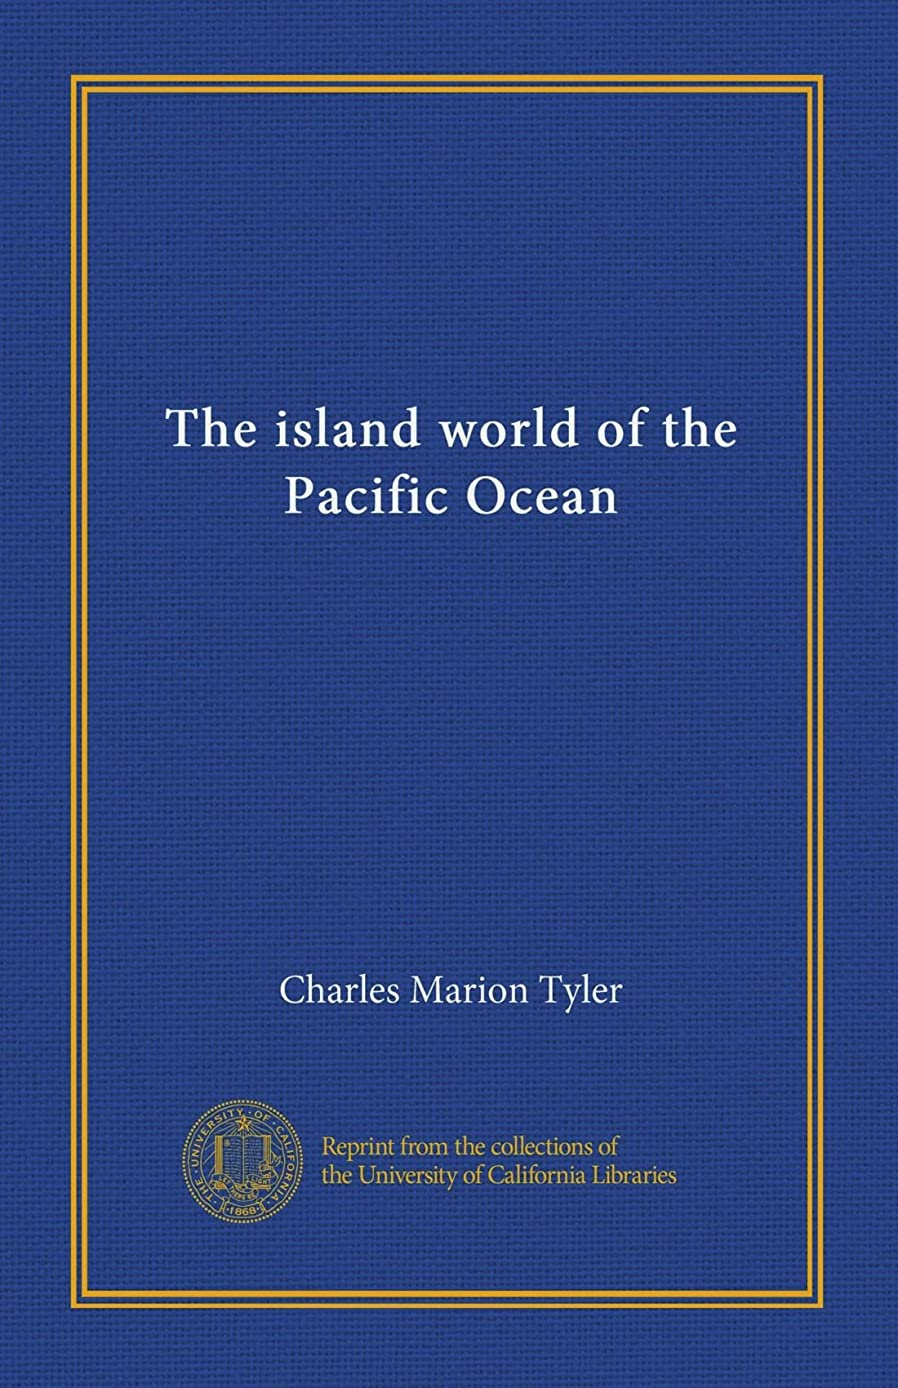 対称エンドテーブル懇願するThe island world of the Pacific Ocean